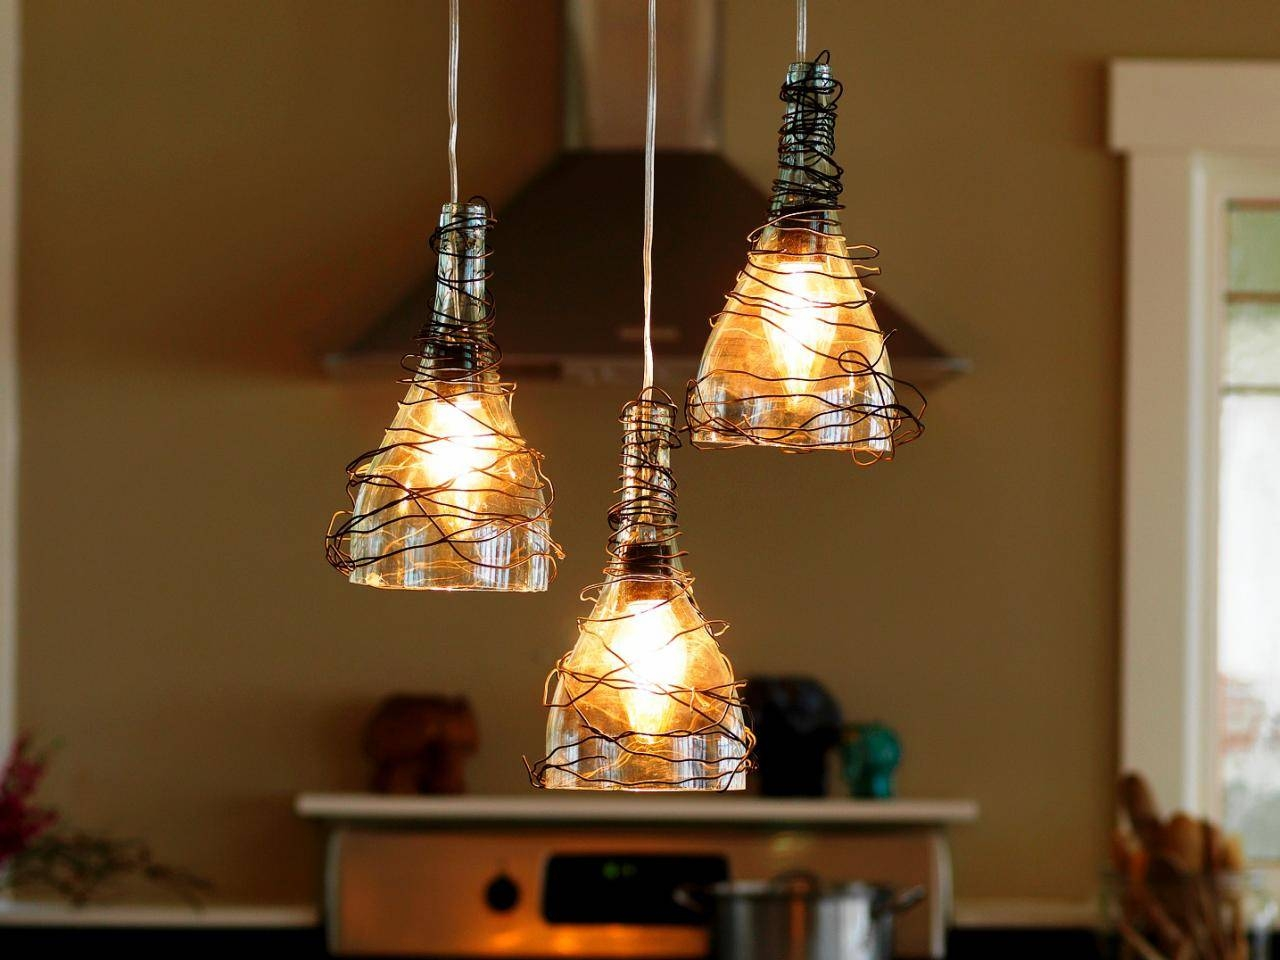 Upcycle Wine Bottle Into Pendant Light Fixtures | How-Tos | Diy throughout Wine Glass Lights Fixtures (Image 12 of 15)